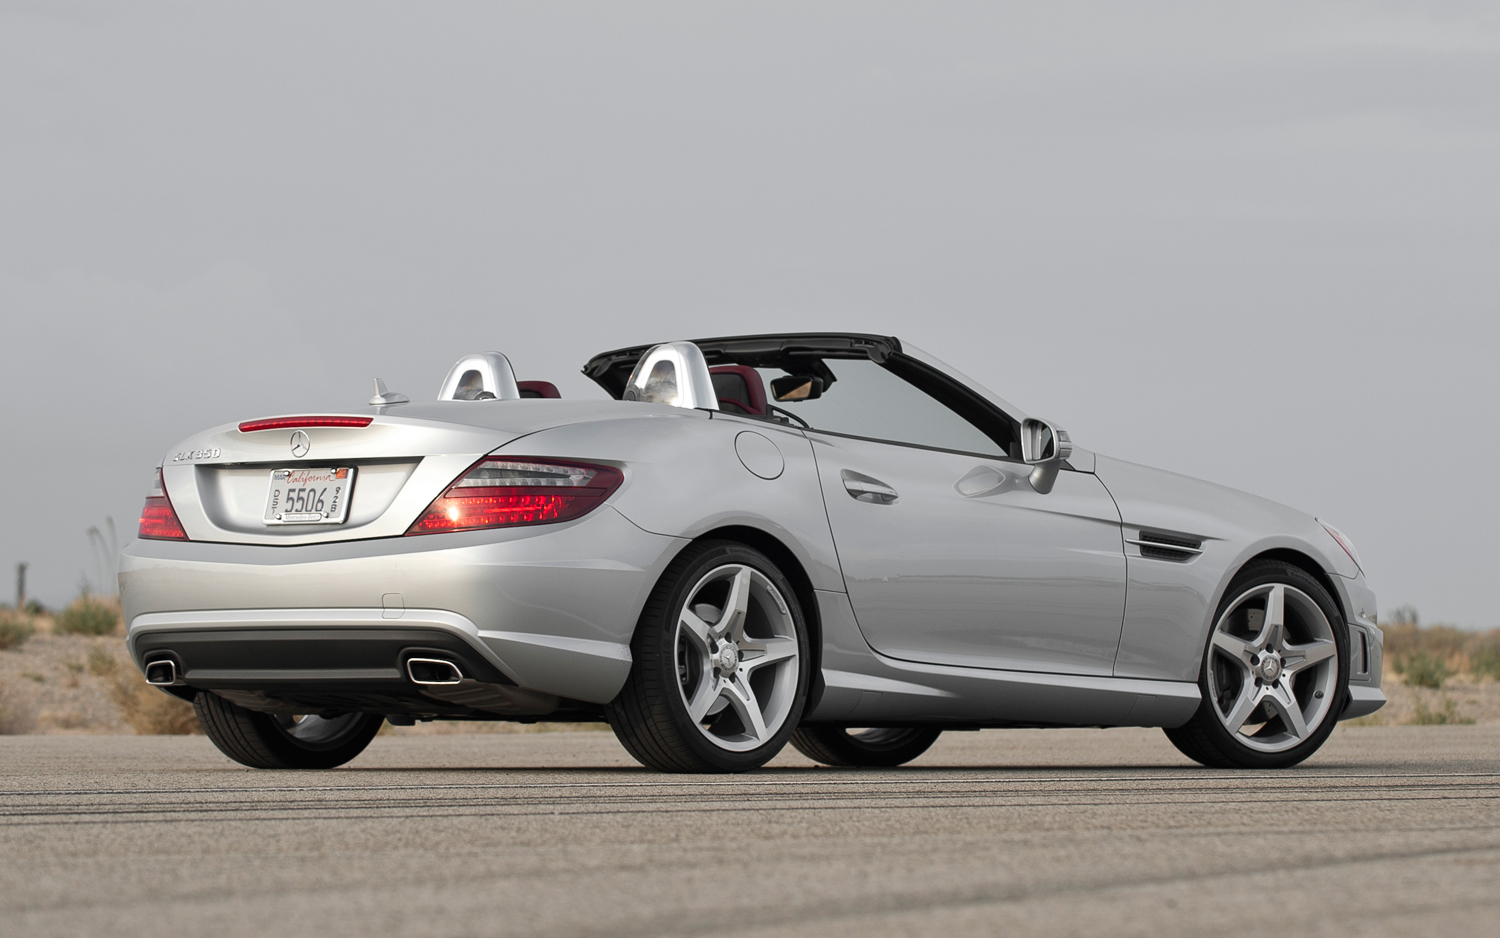 Mercedes benz slk 350 technical details history photos for Mercedes benz escondido parts